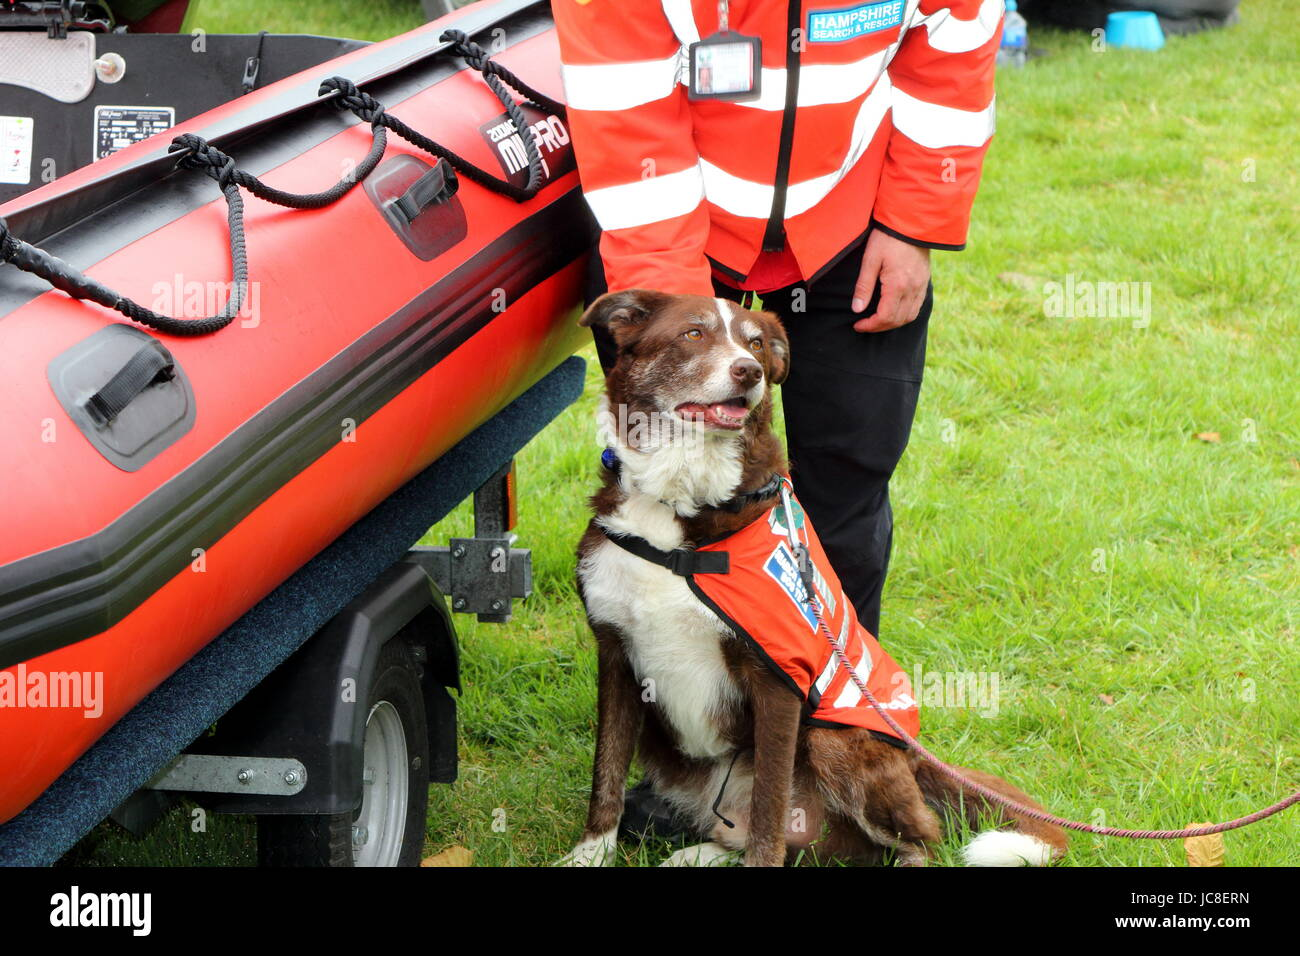 Beaulieu, Hampshire, UK - May 29 2017: Dog and its handler belonging to the Hampshire Search and Rescue team - Stock Image